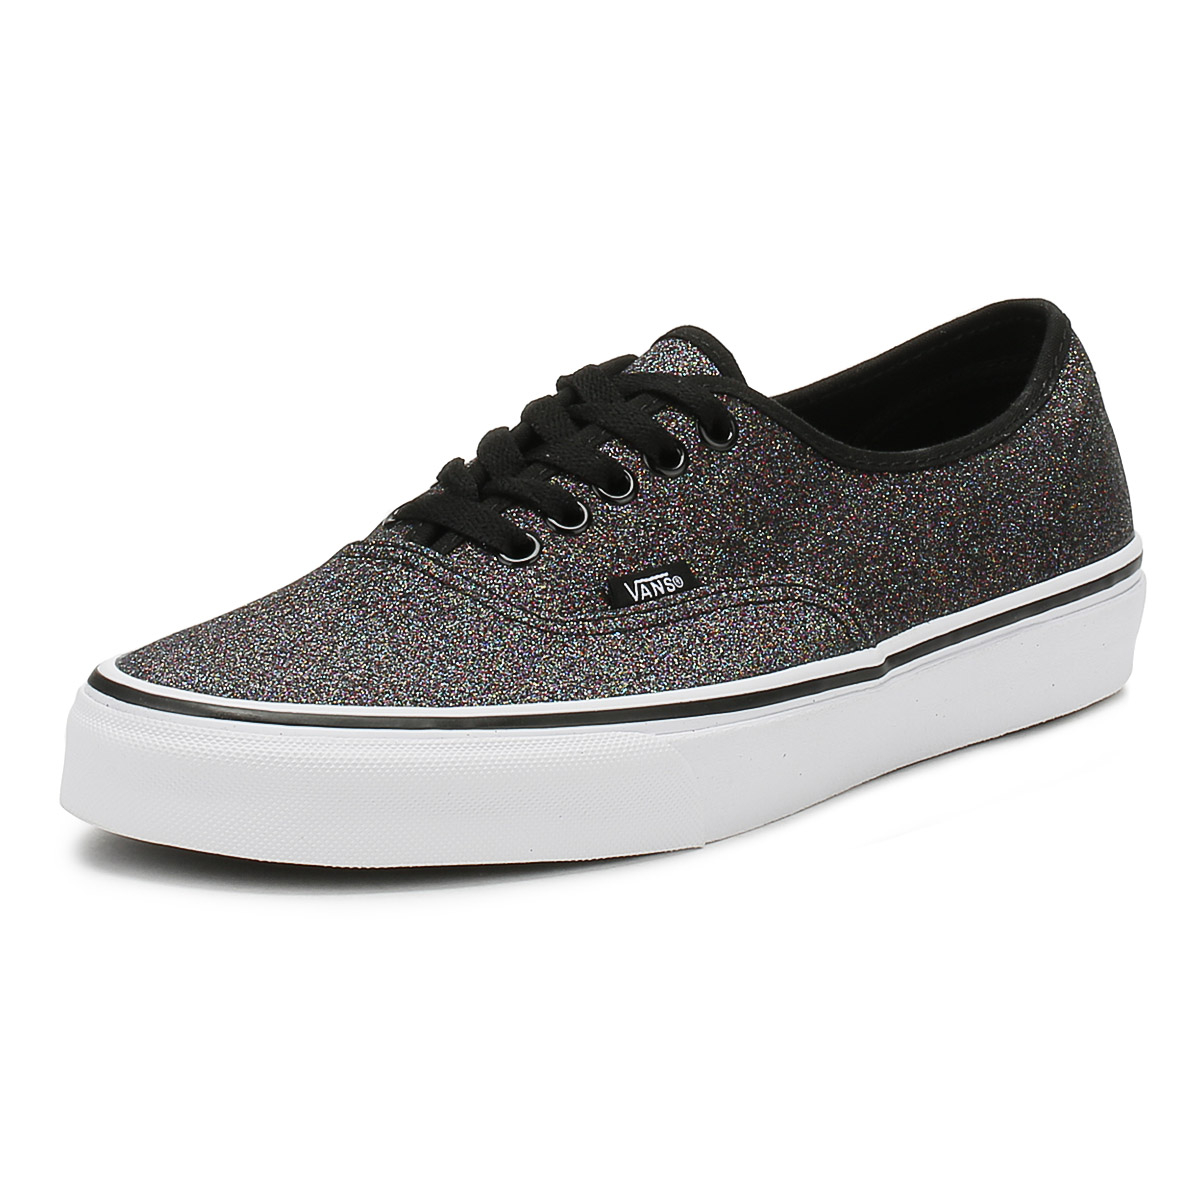 aa87cae715 Details about Vans Womens Authentic Trainers Glitter Rainbow Black Lace Up  Ladies Skate Shoes